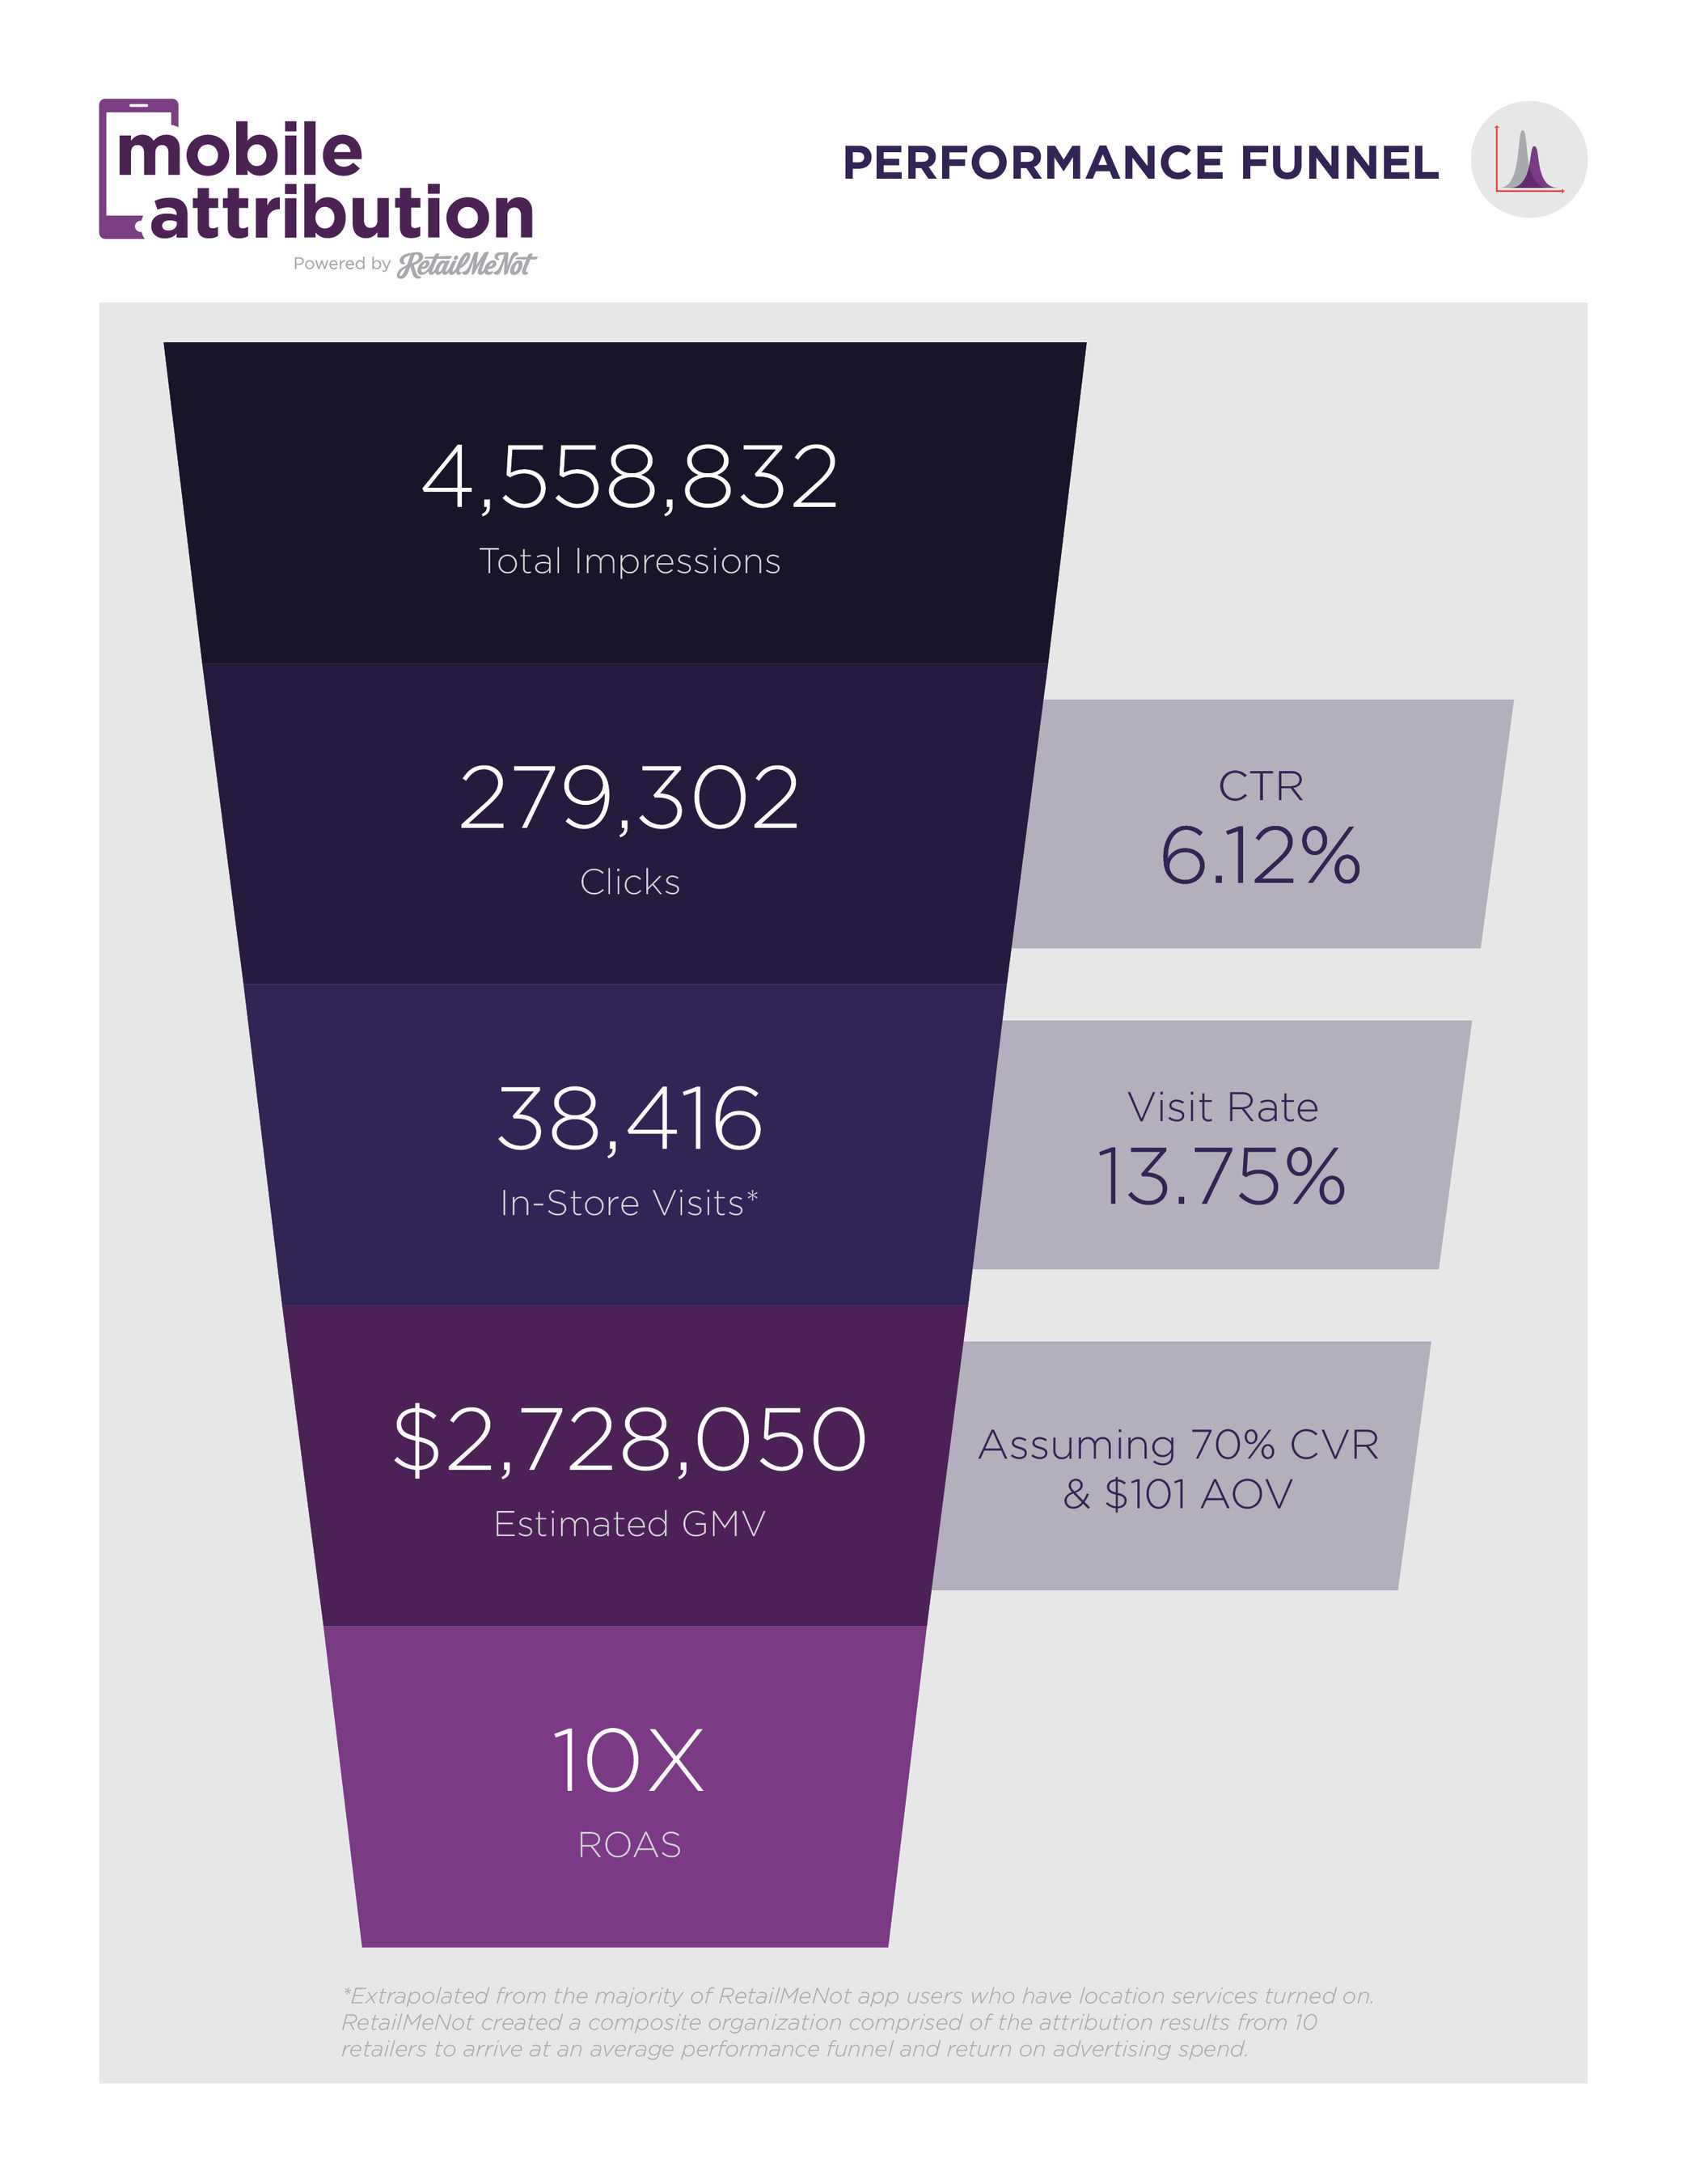 Mobile Attribution Powered by RetailMeNot - Performance Funnel